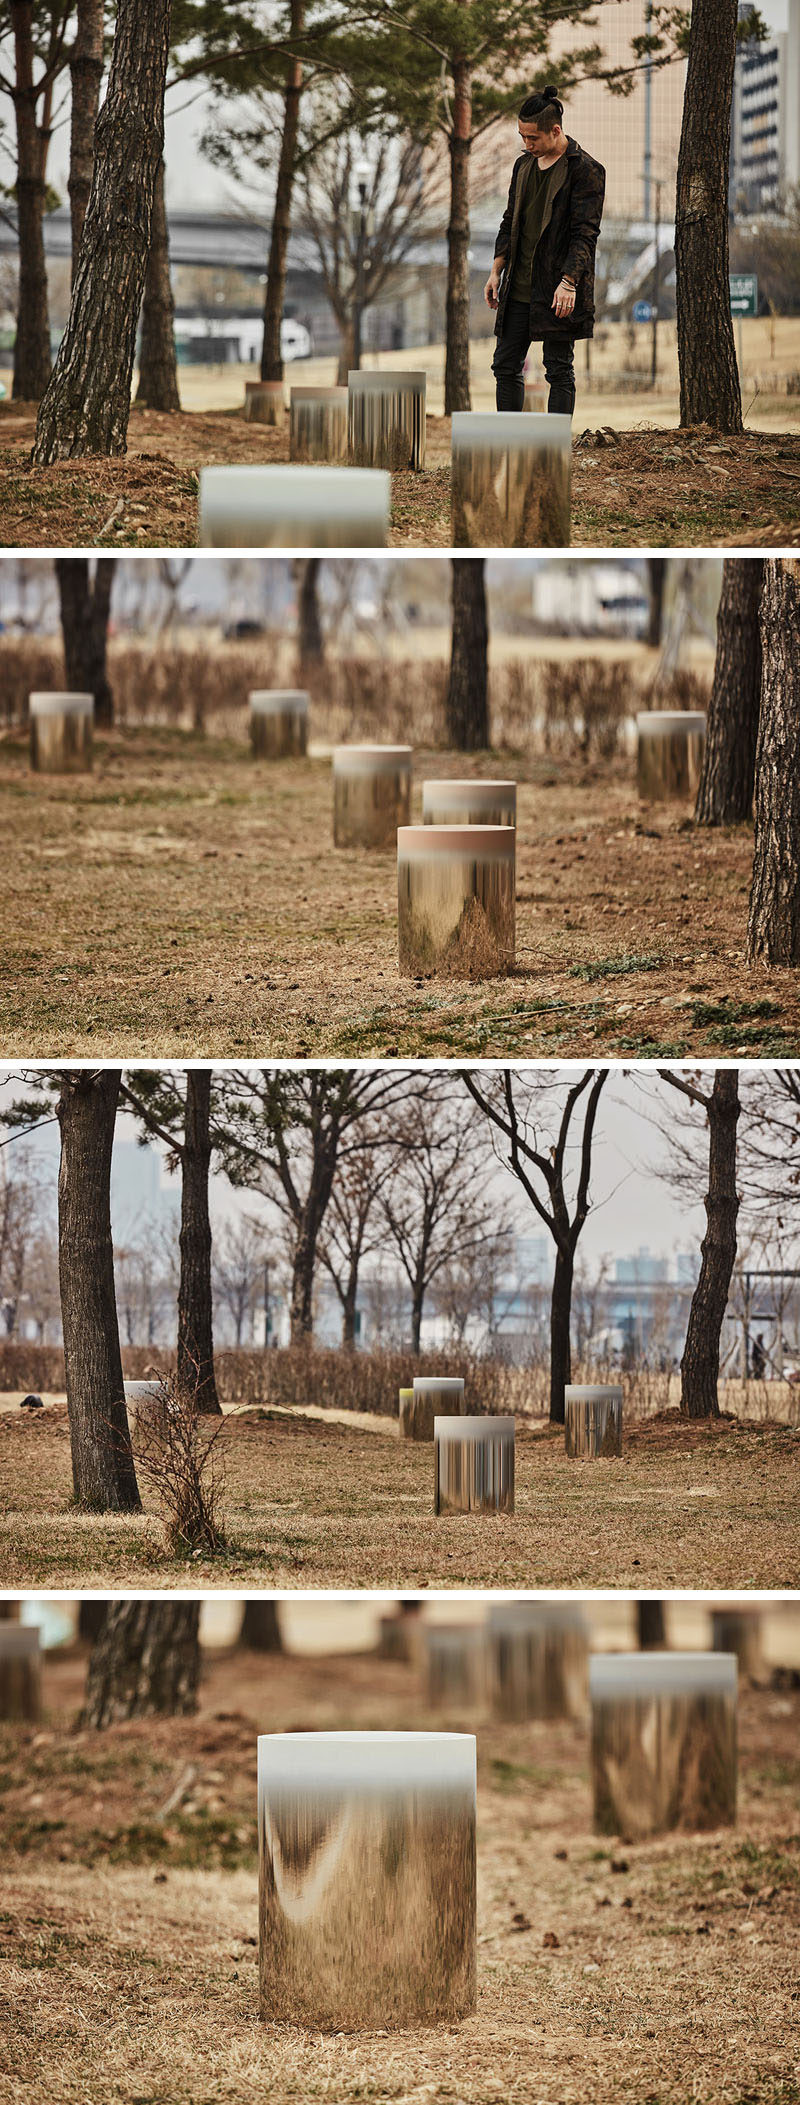 South Korean designer Jiyoun Kim has created the Dokkaebi Stools, a collection of 24 mirrored stainless steel stools with each a painted seat, that will grace the Hangang Art Park in Seoul.